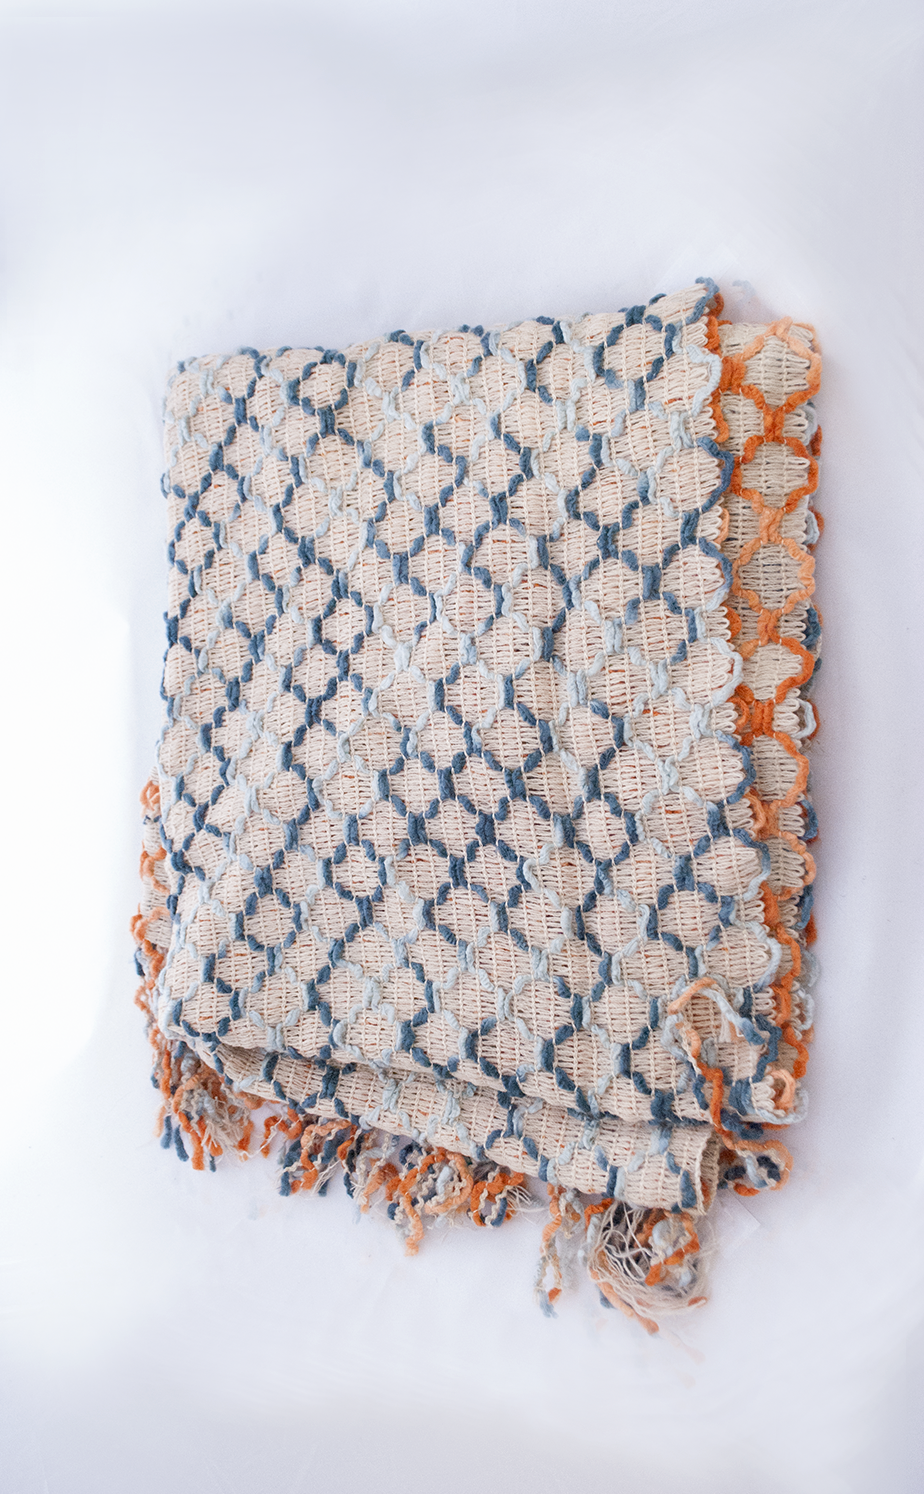 afghan throw - orange   Quantity: 2  Price: $5.50